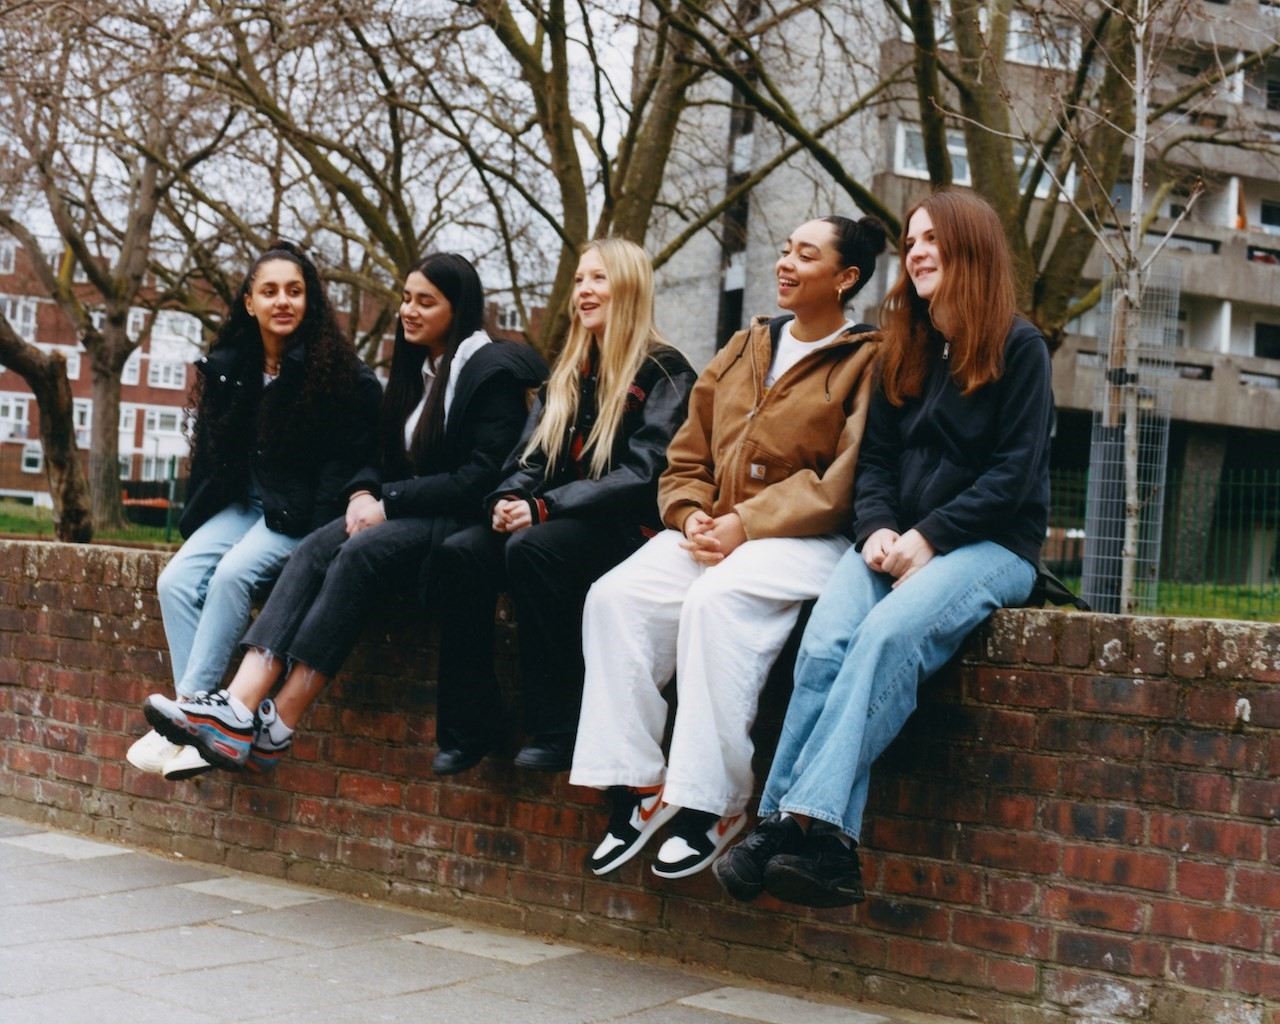 How do London's teenage girls see the future of the city? 1